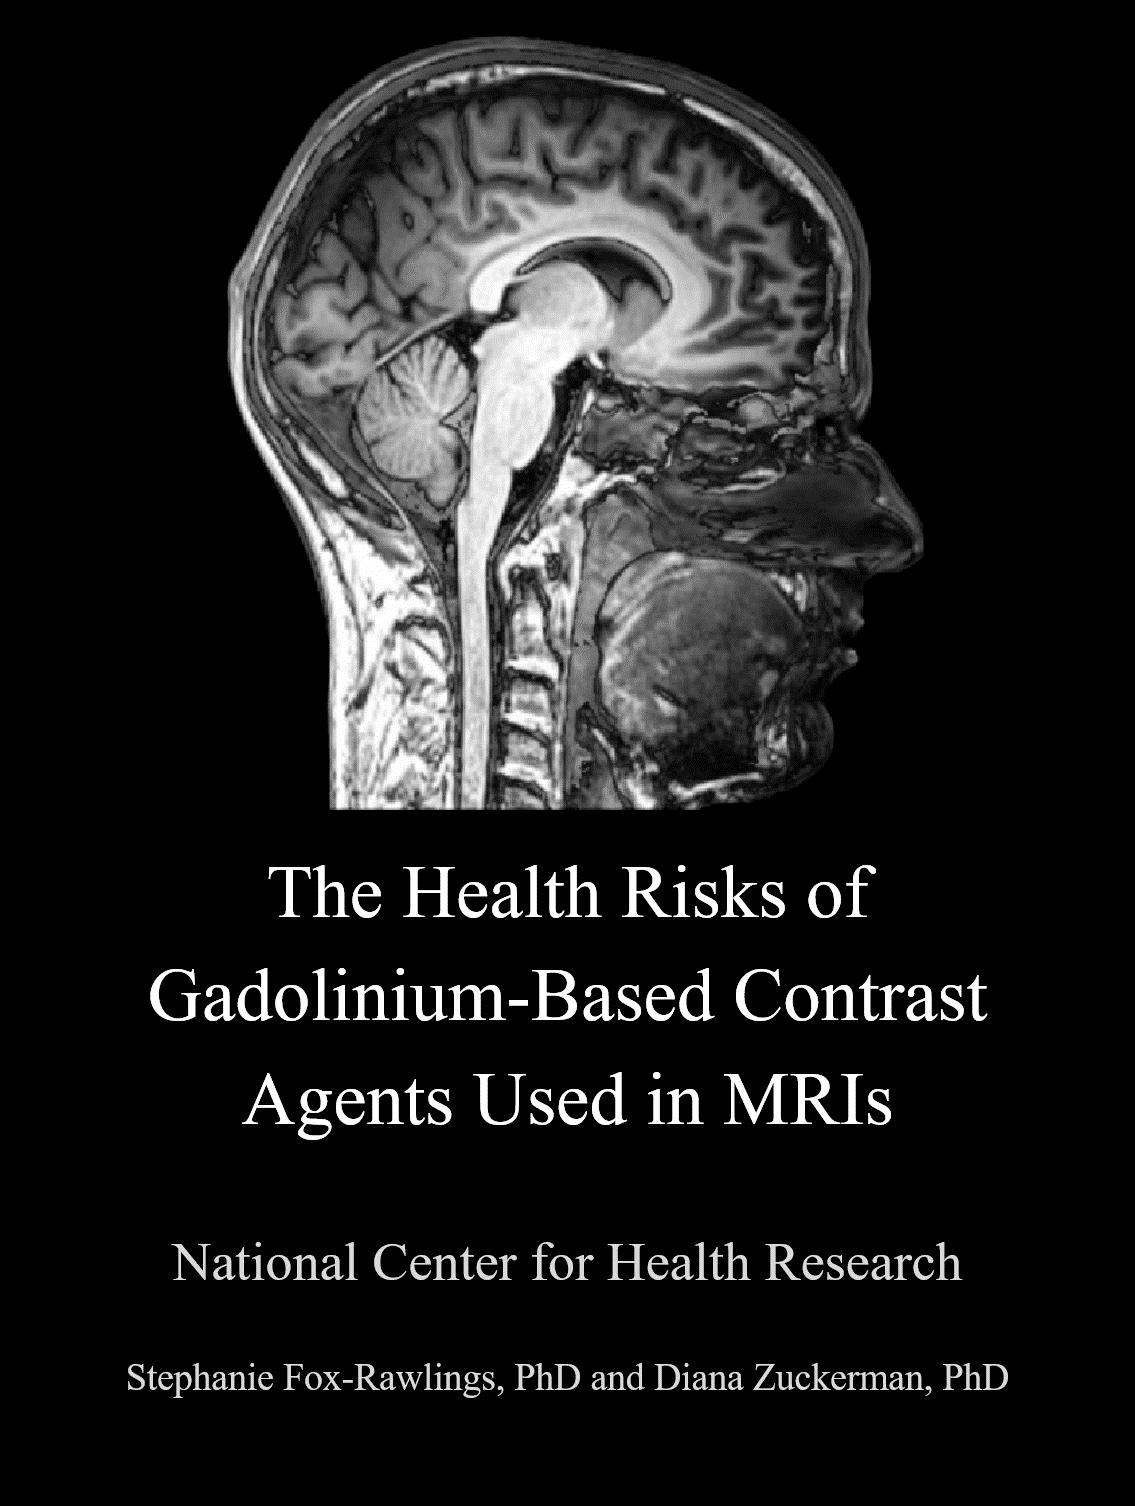 NCHR Report: The Health Risks of MRIs with Gadolinium-Based